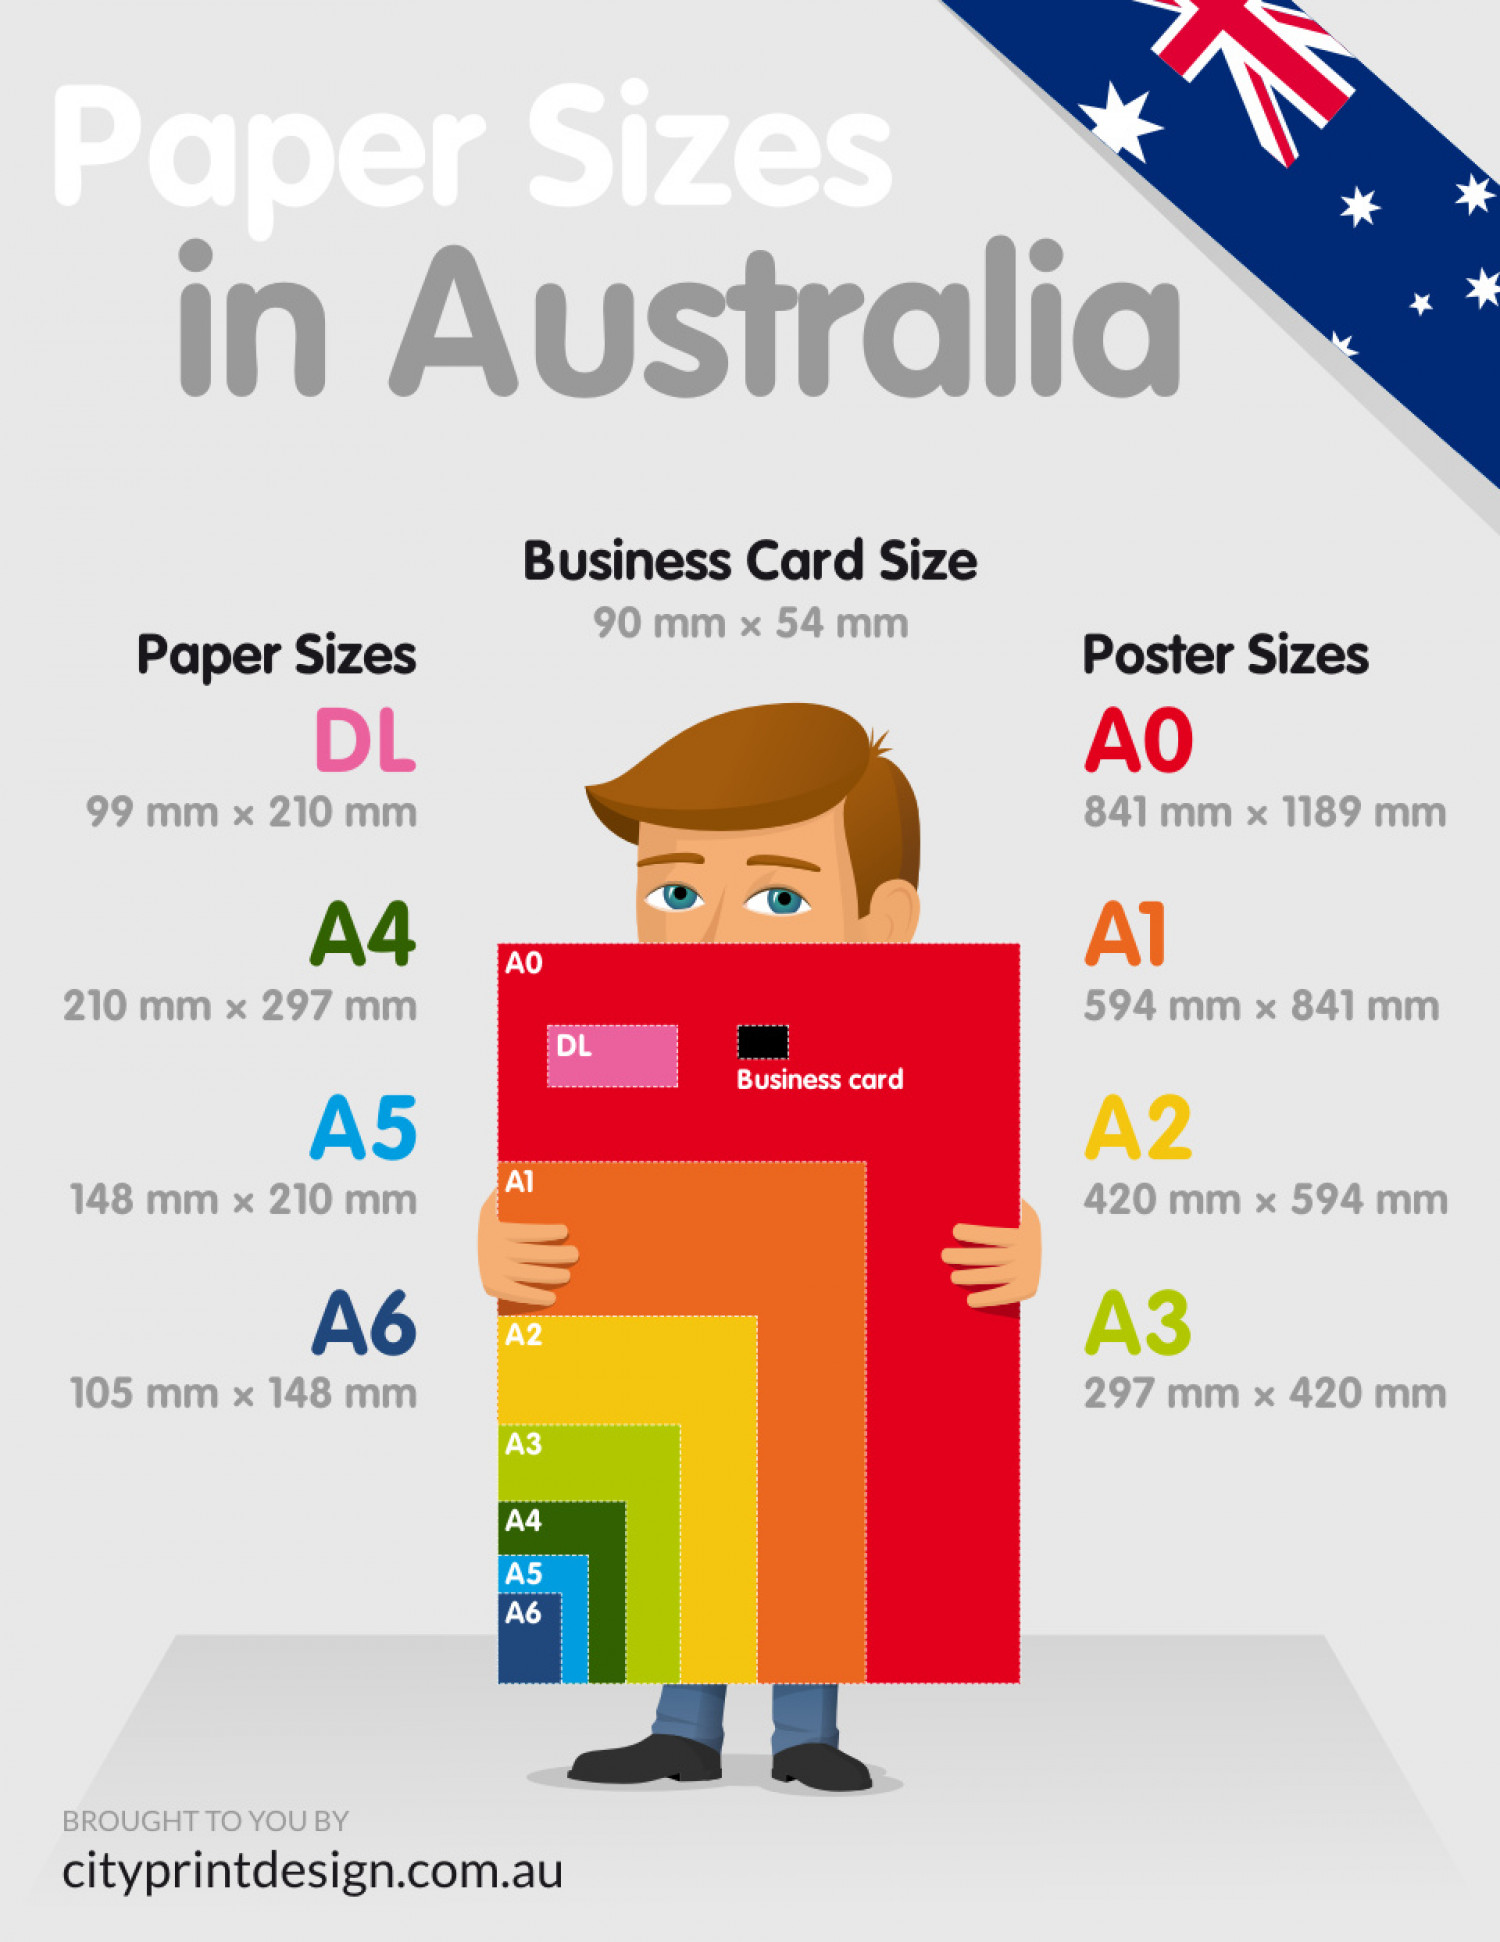 Paper Dimensions and Business Card Dimensions in Australia Infographic